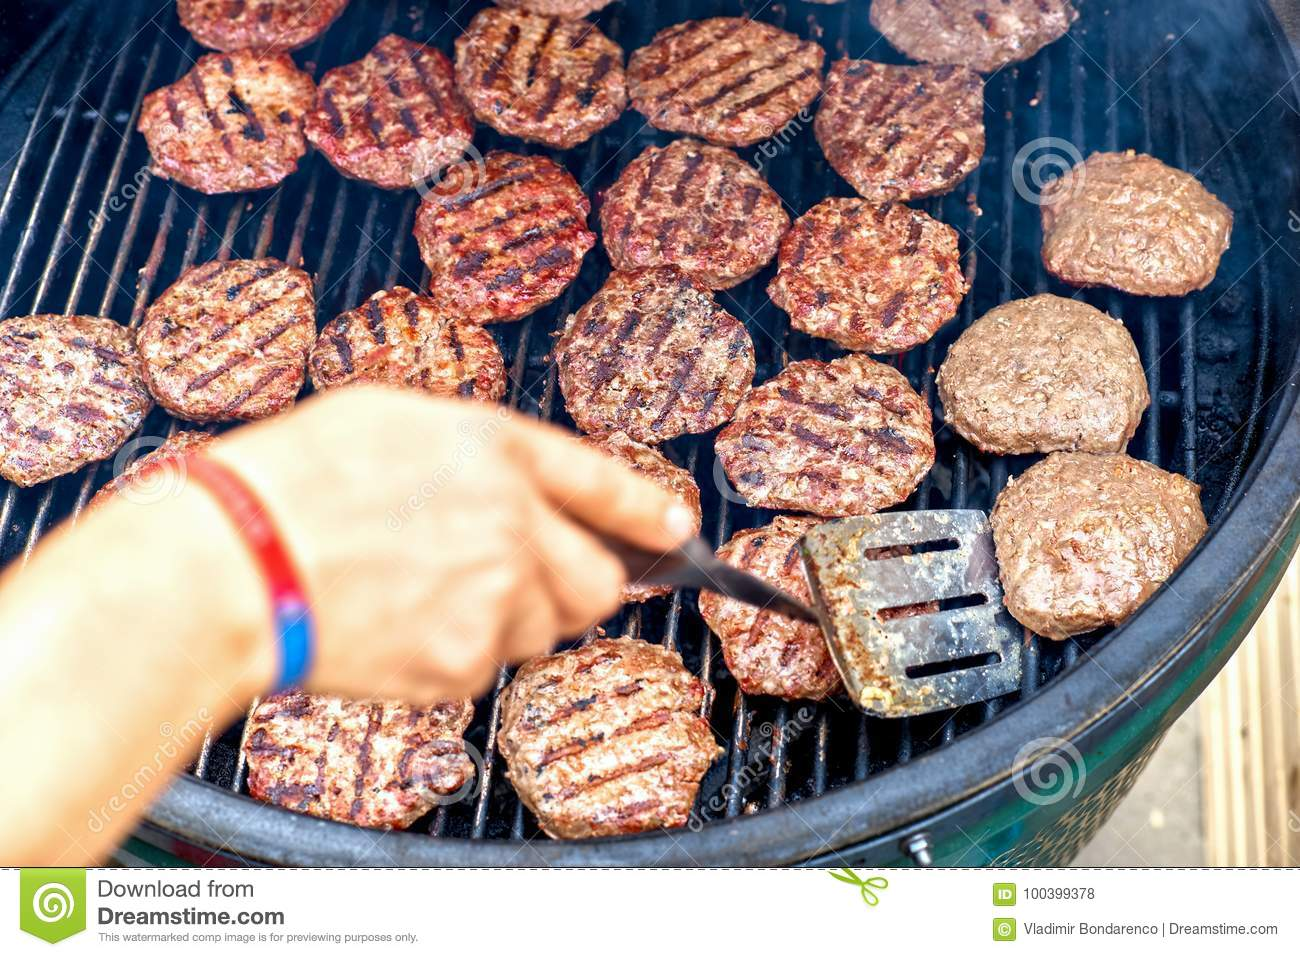 Pork meat and chicken grilling for burgers with flames and smoke